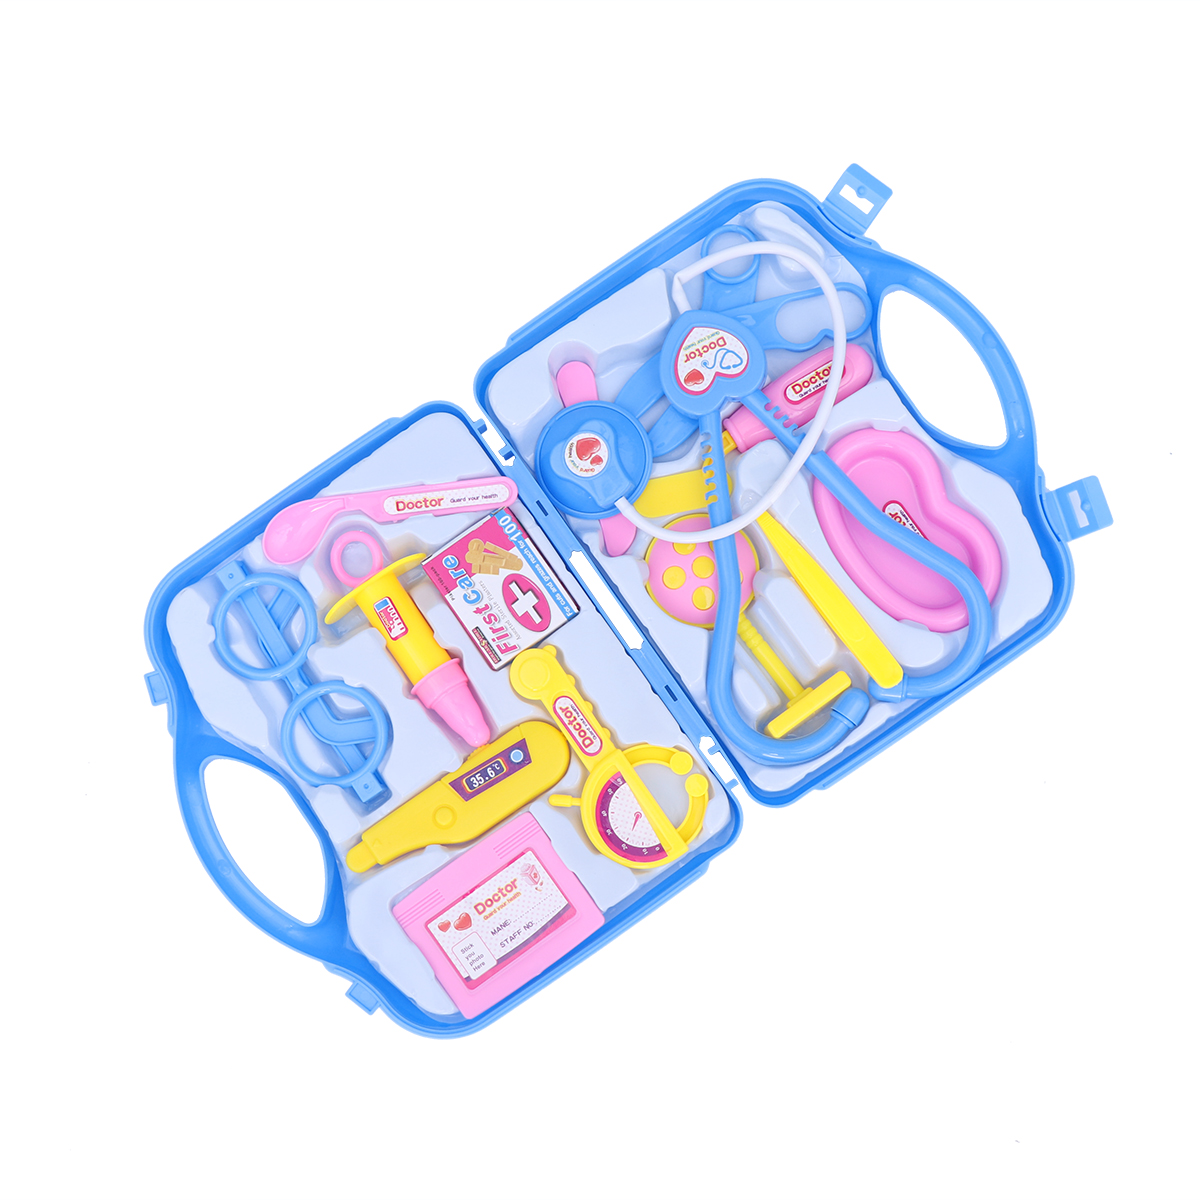 Childrens Little Doctor Toy Set Tool Kits Pretend Play Toy Role Play Toys With Suitcase For Kids Toddlers Boys Girls